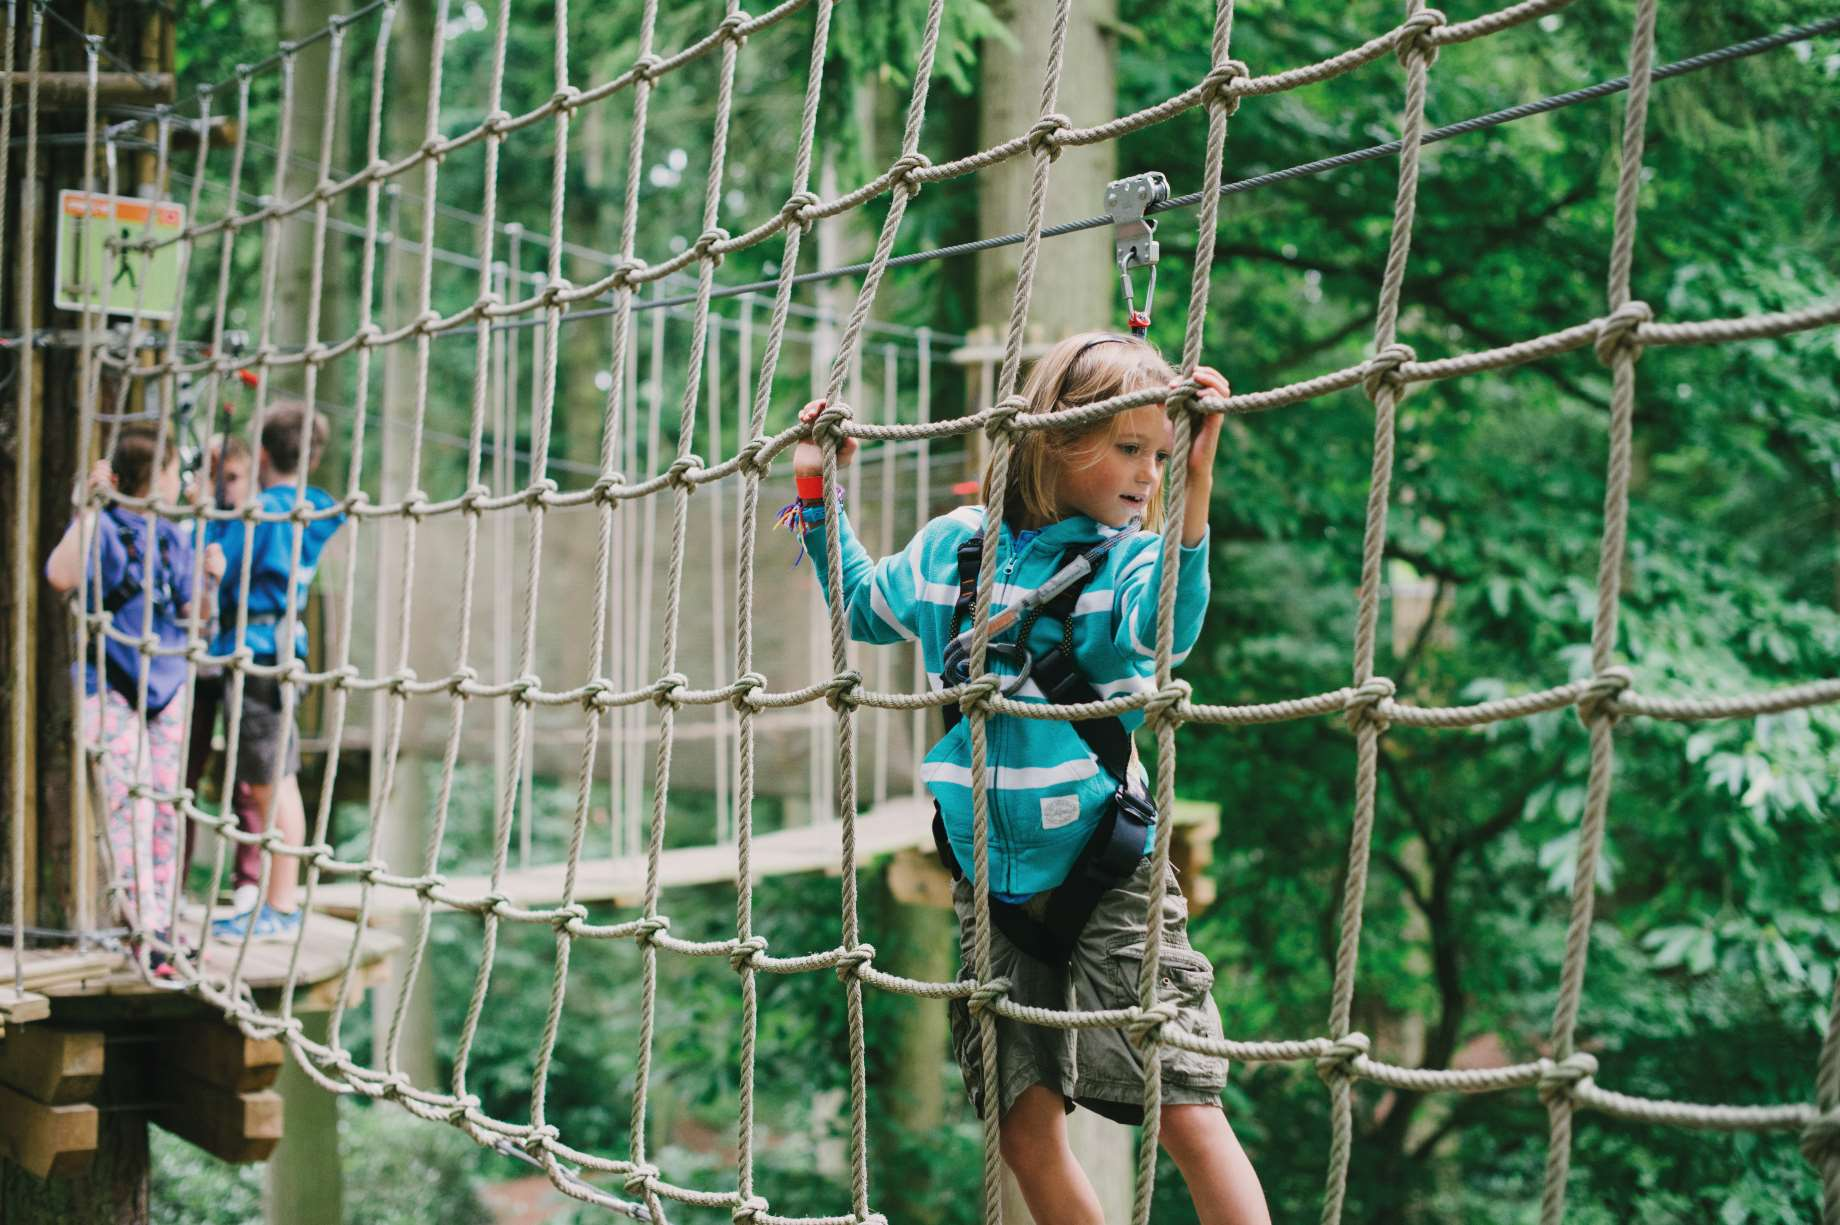 Hang out at Go Ape this summer